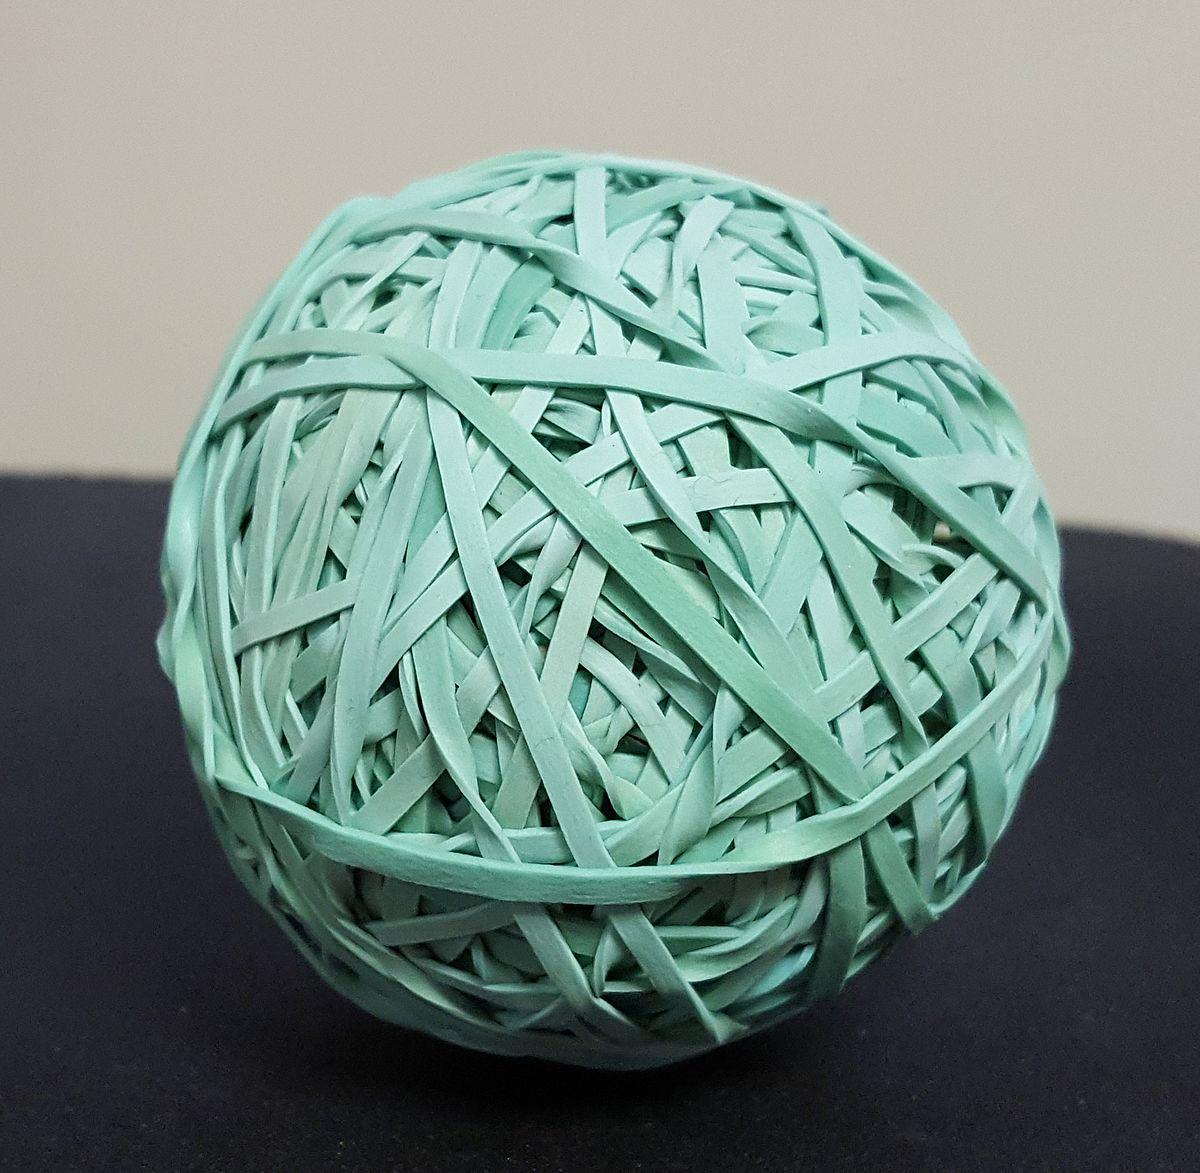 What Is In The Center Of A Rubber Band Ball 41